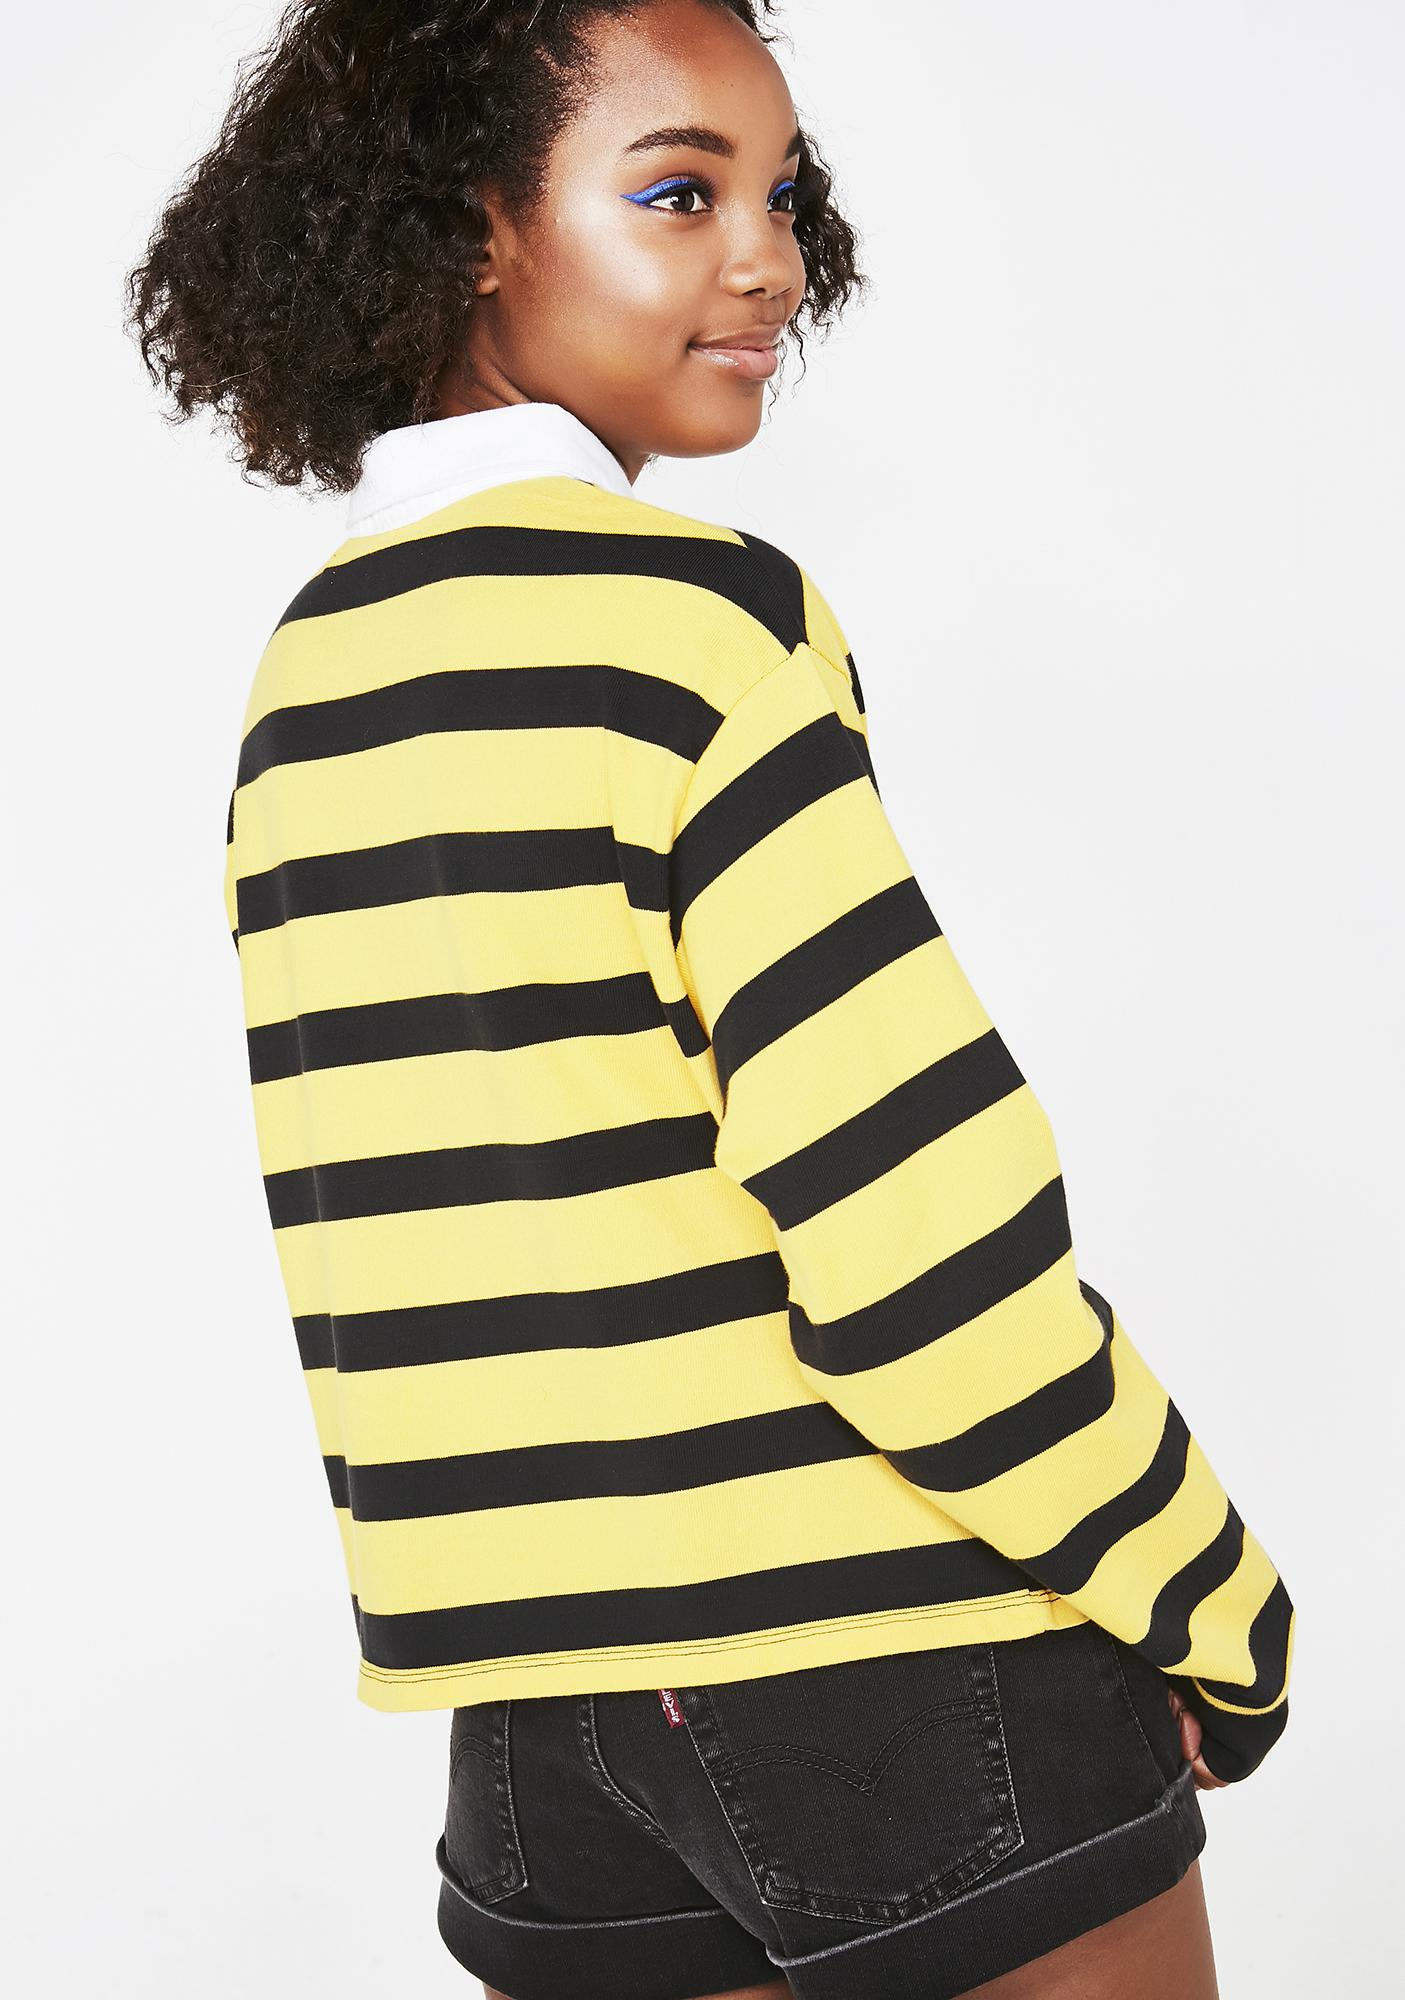 Levis Striped Rugby Top